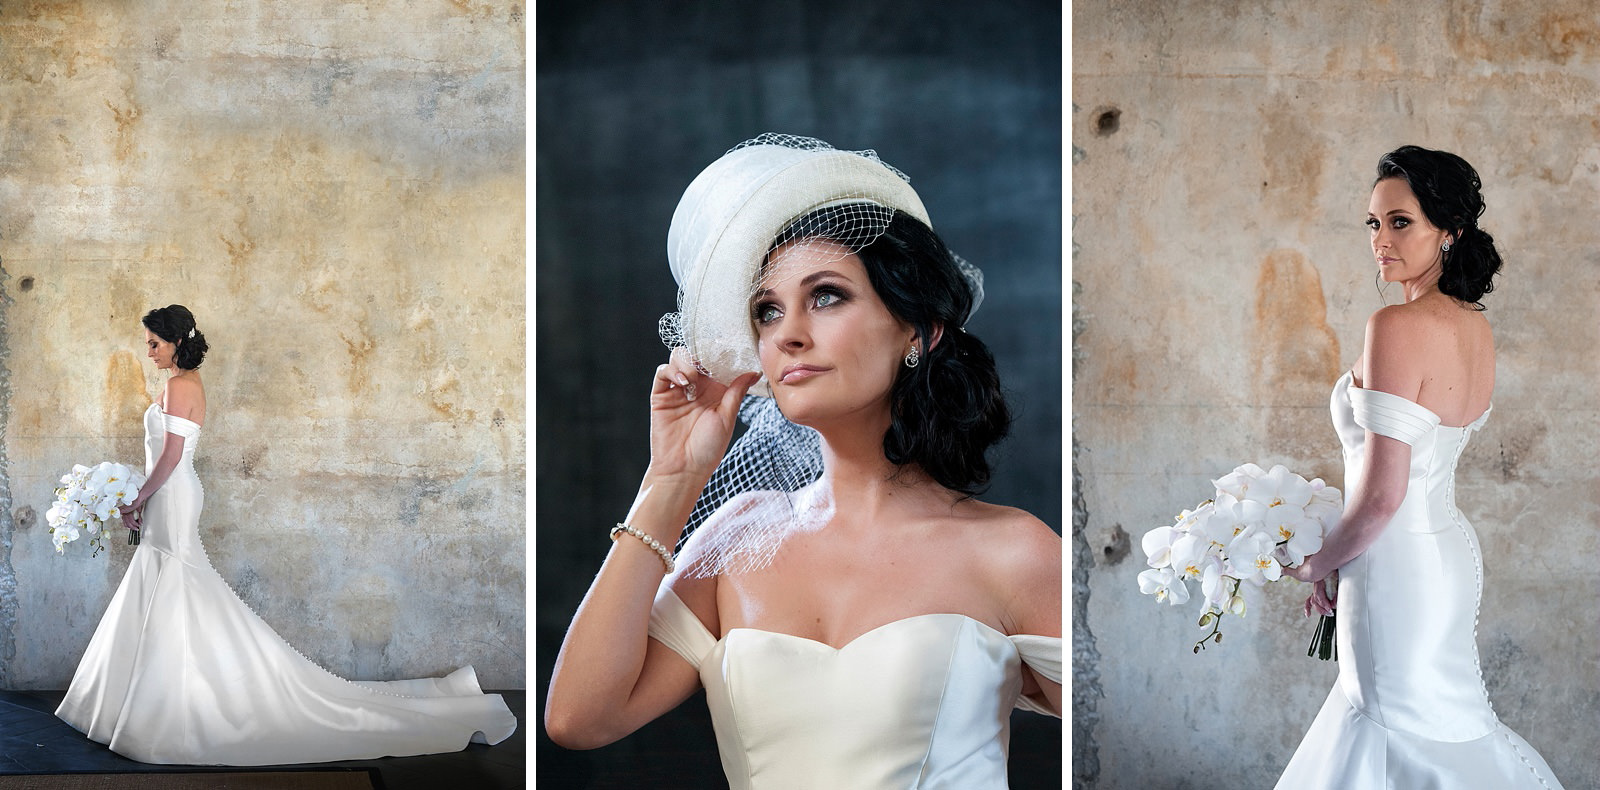 Beautiful and creative bridal portraits by Jacki Bruniquel